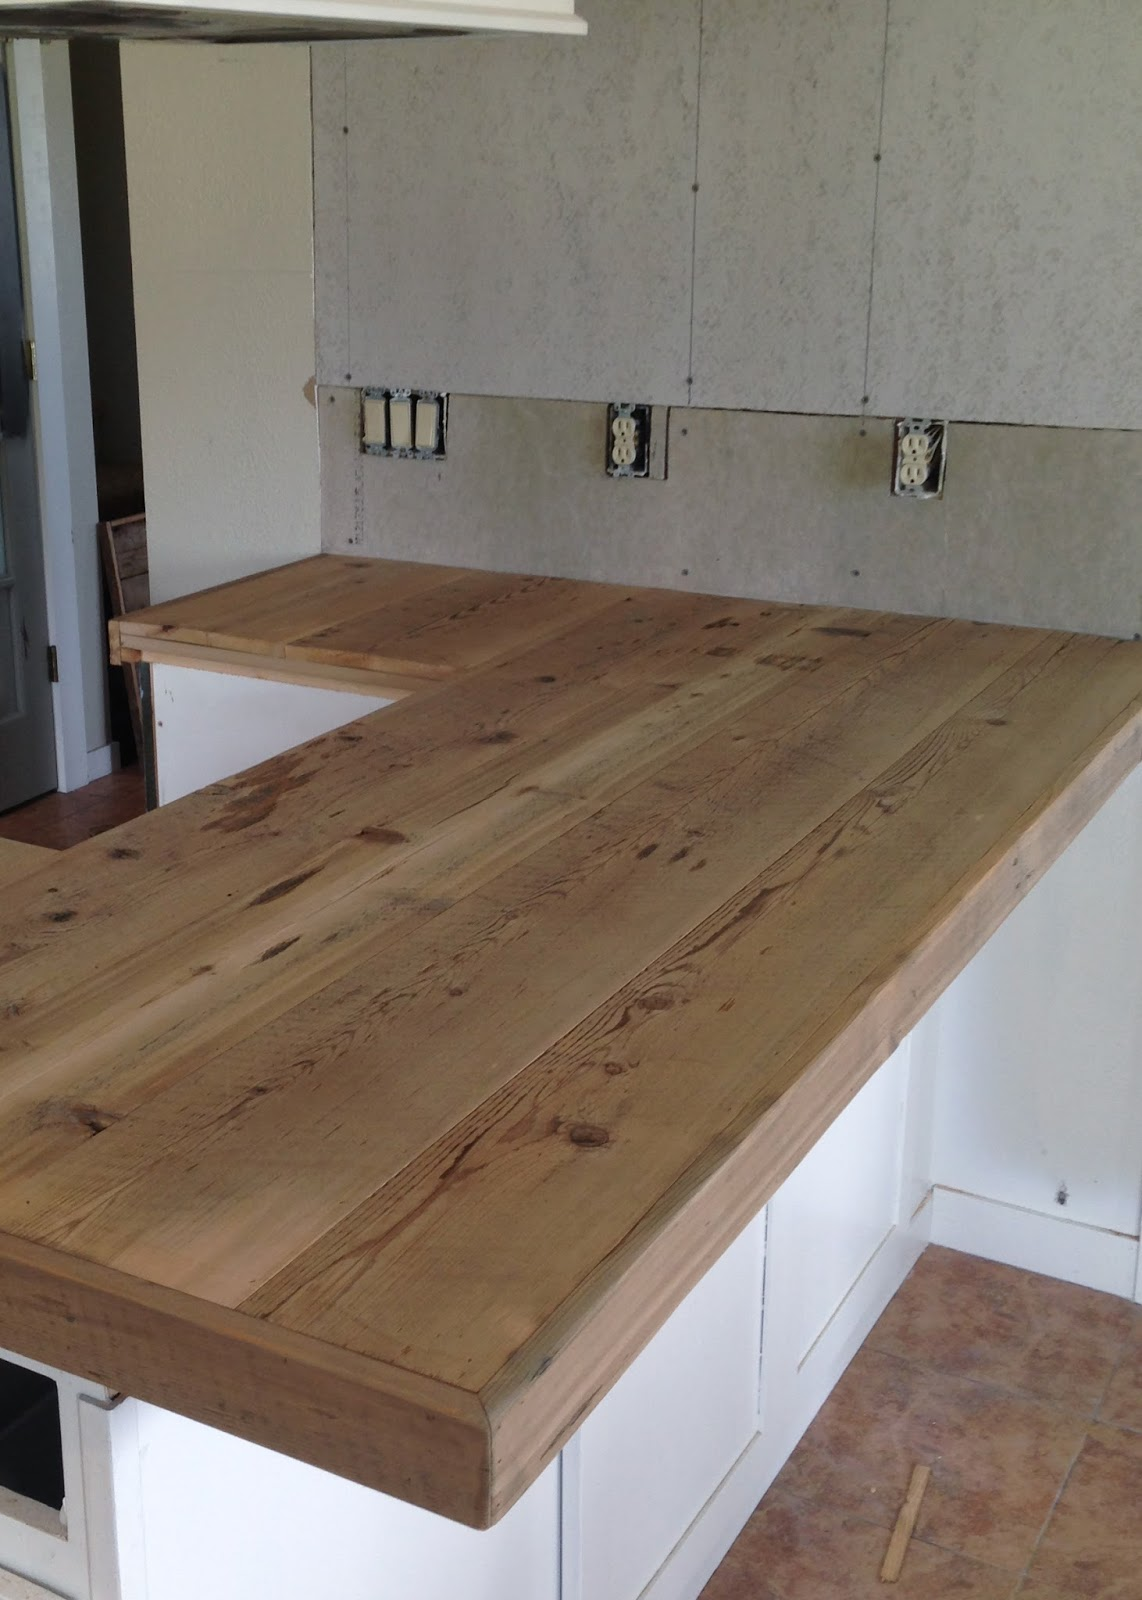 Diy Reclaimed Wood Countertop Averie Lane Diy Reclaimed Wood